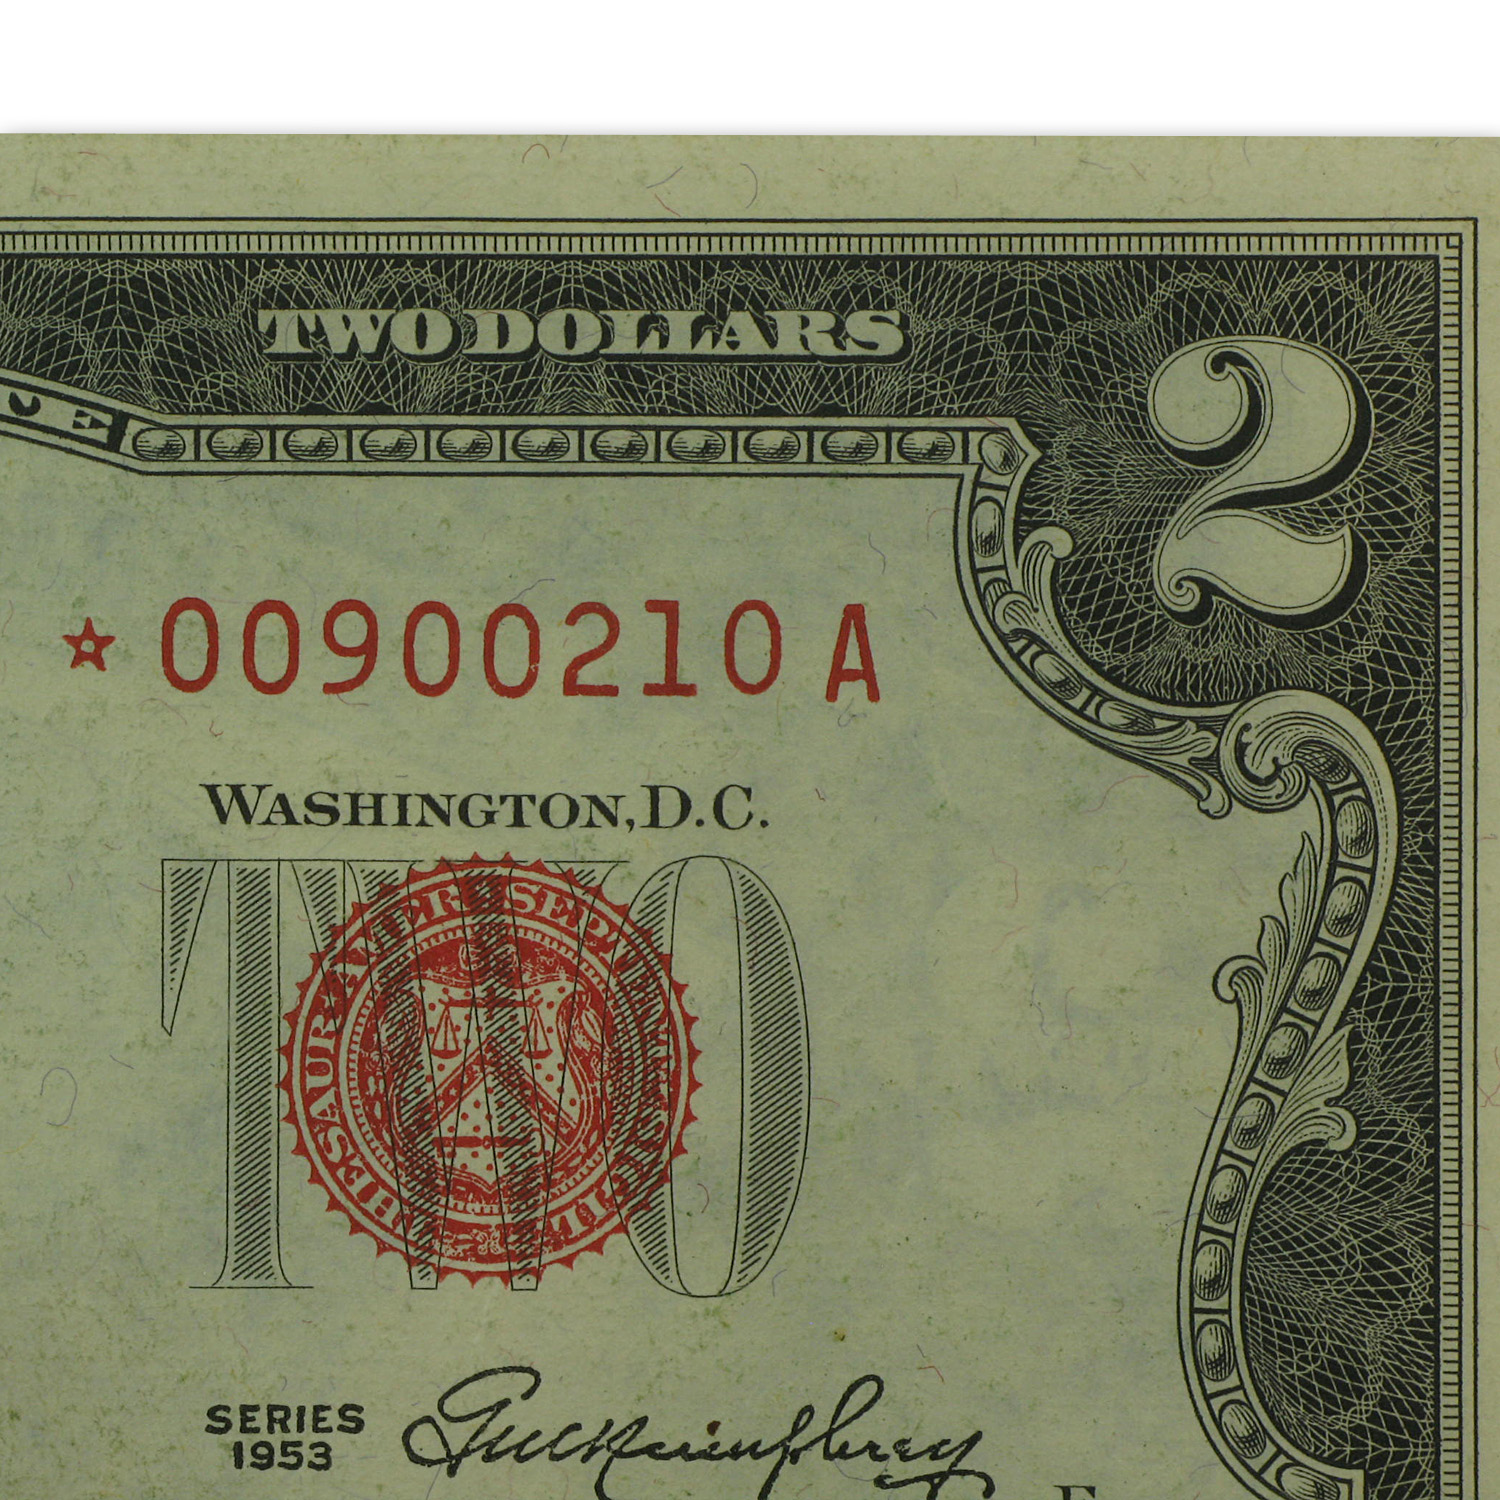 1953* $2.00 U.S. Note Red Seal XF (Star Note)